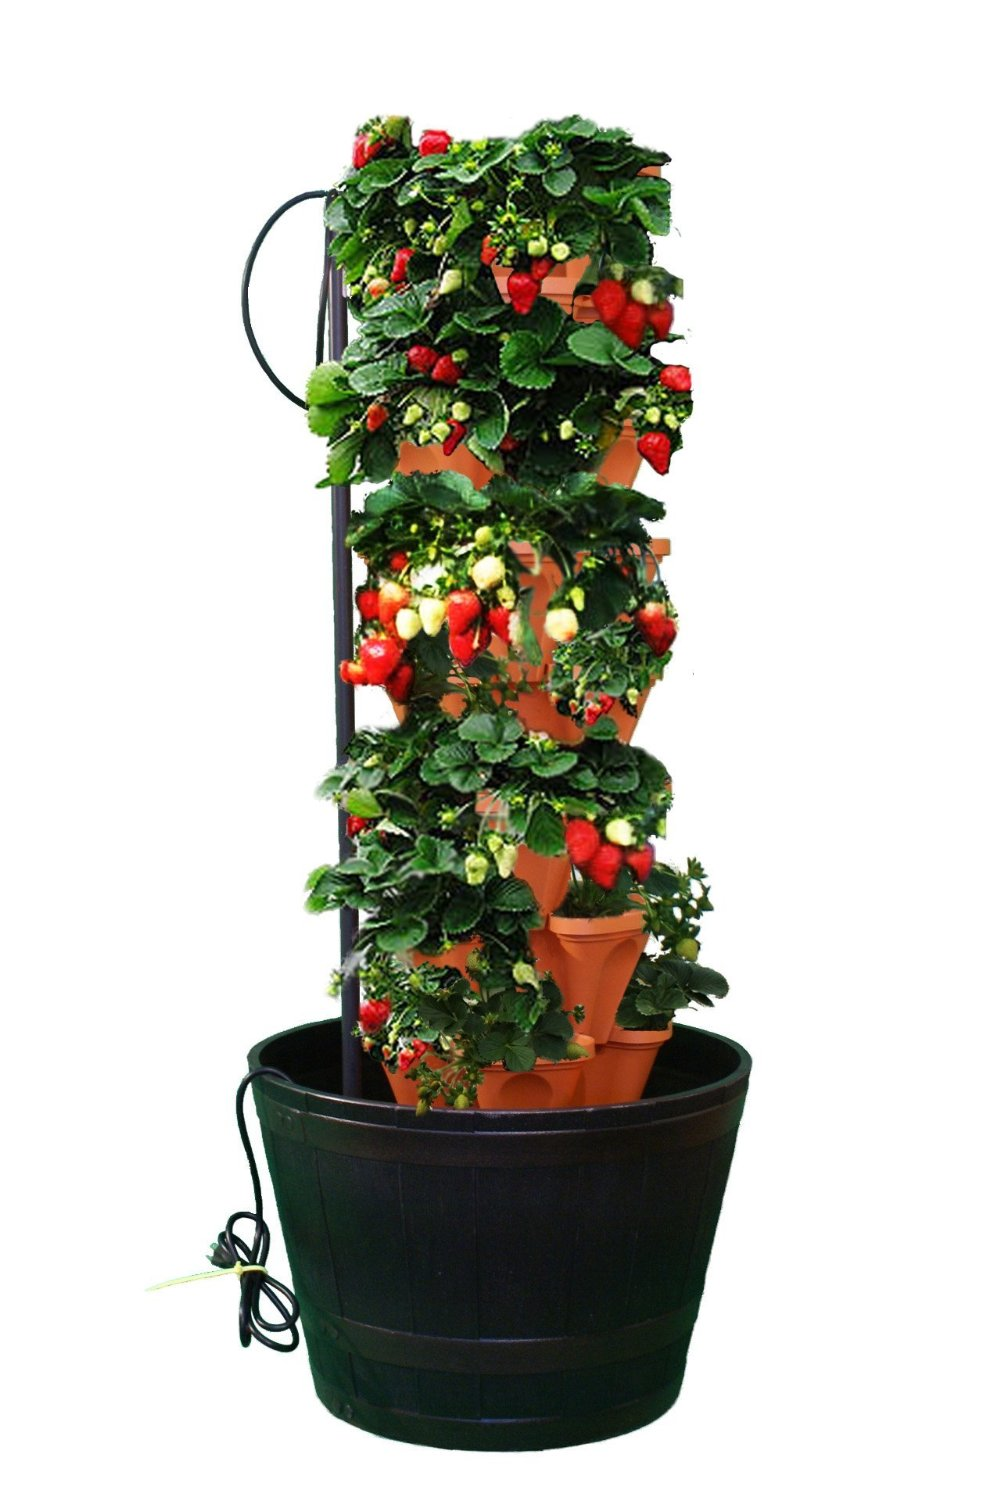 vertical tower for hydroponics